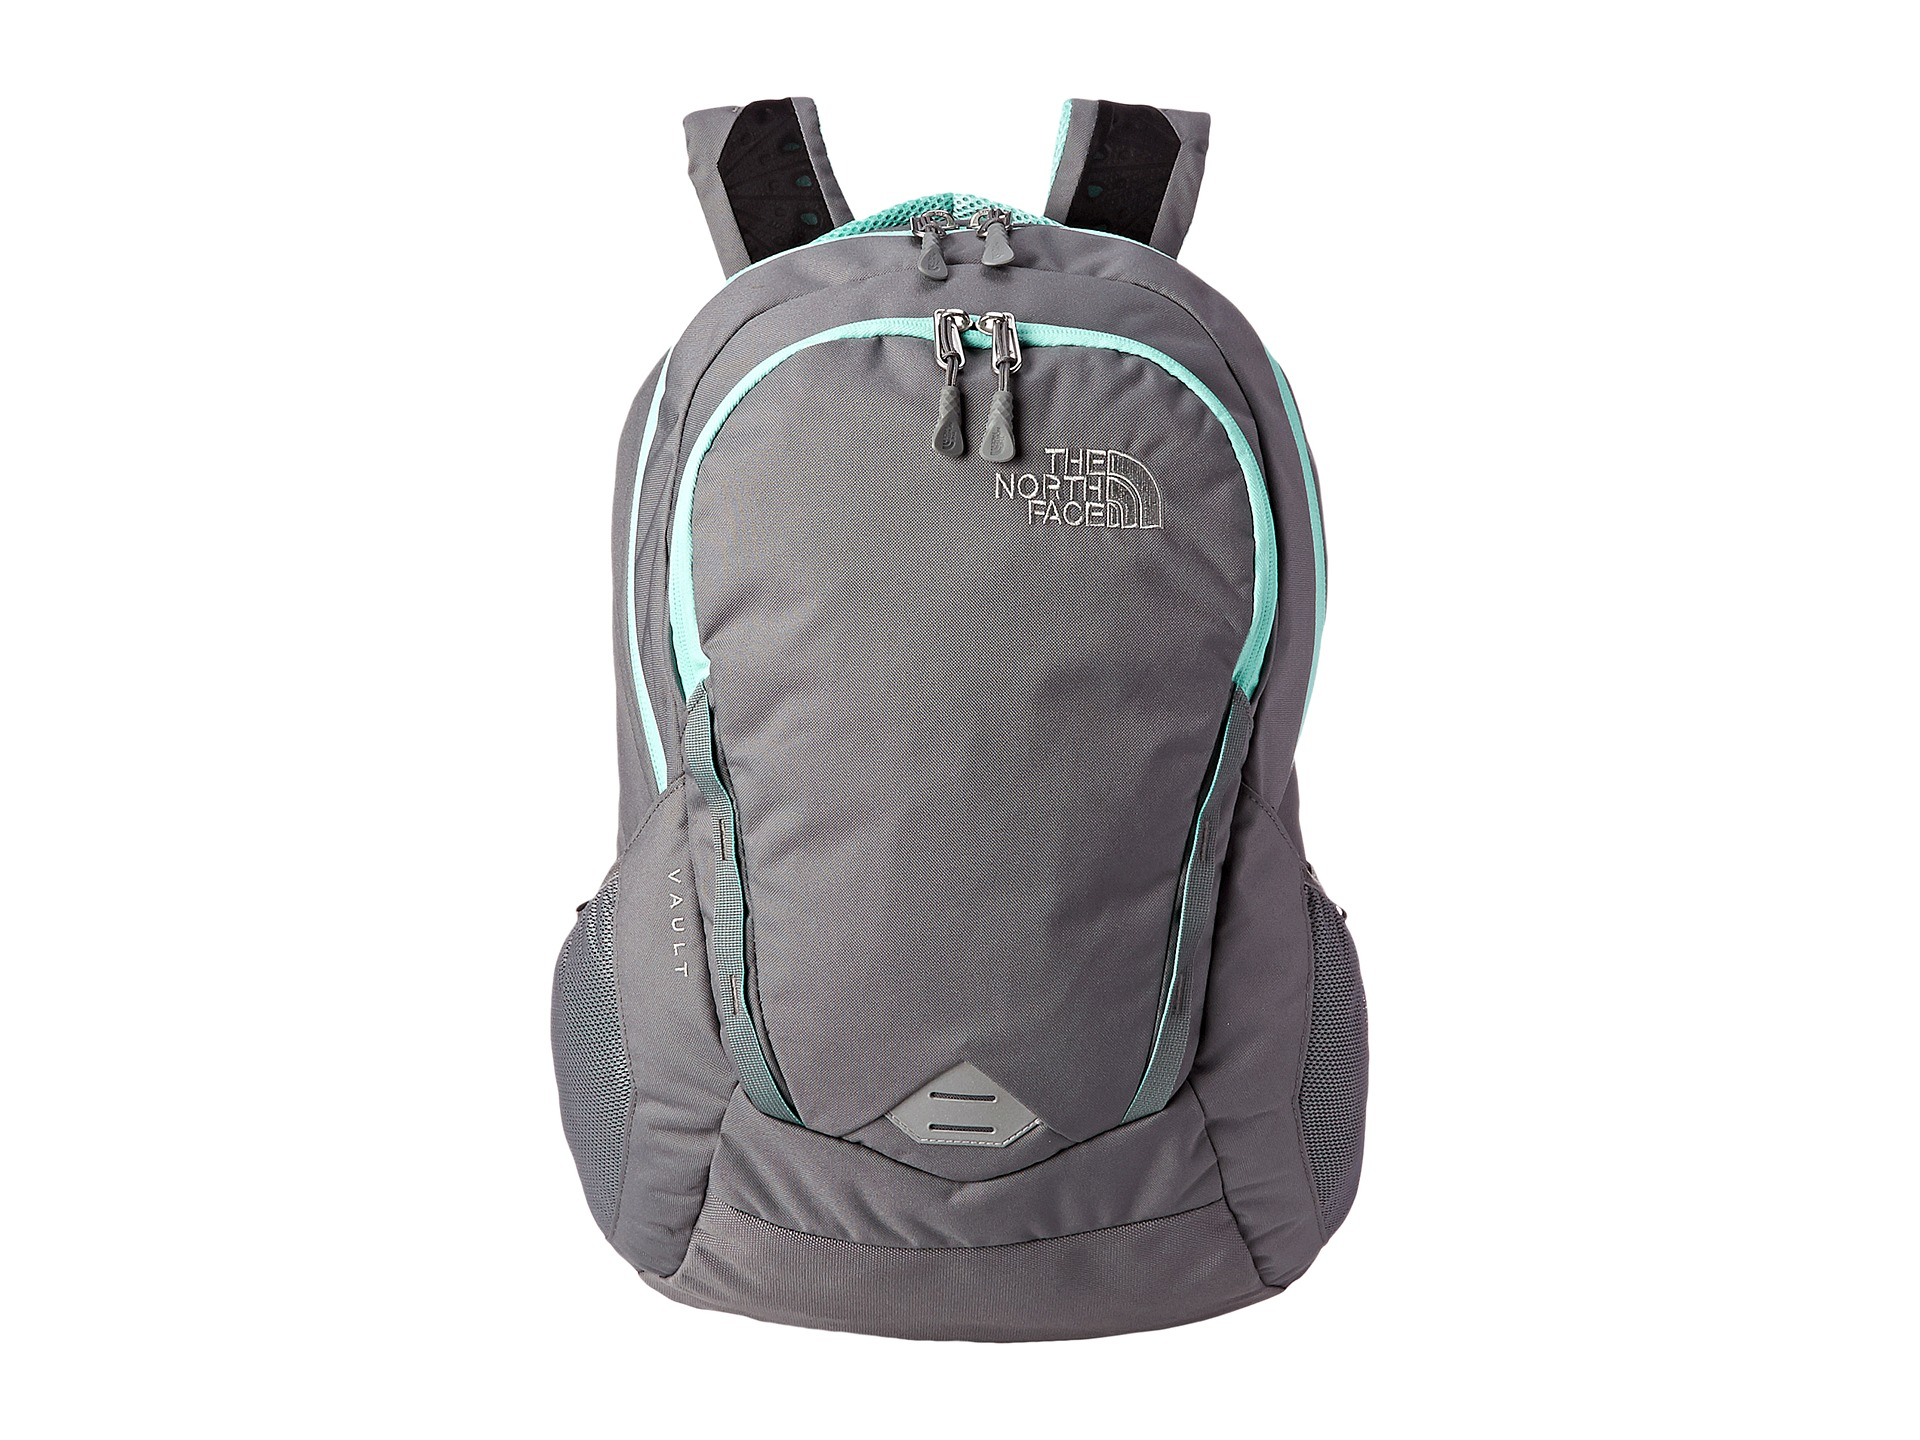 c9f2016bc The North Face Vault Backpack Green - CEAGESP